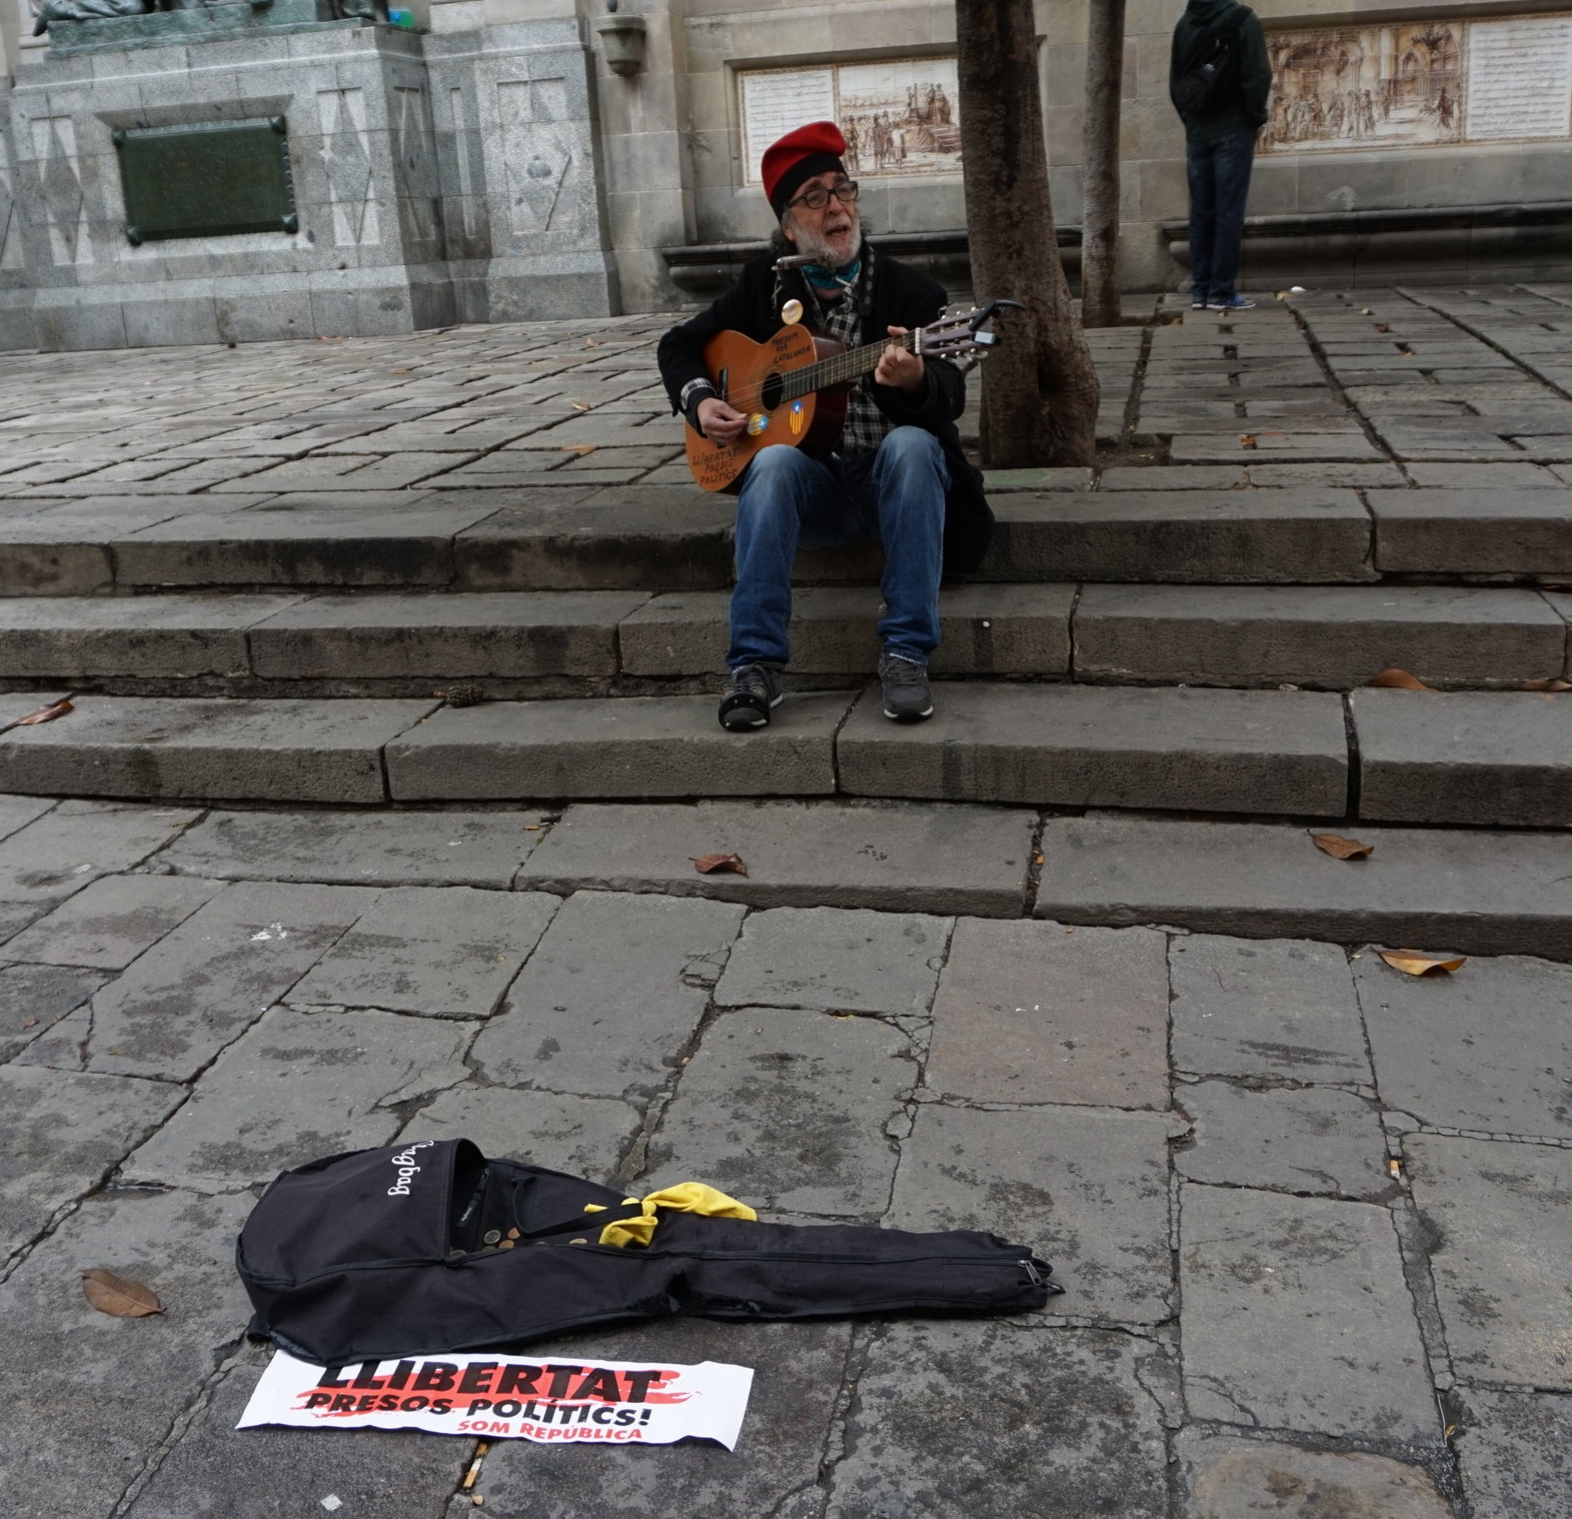 In the Gothic Quarter, a man in a traditional Catalan hat called a  barretina  plays his guitar and sings in support of political prisoners.